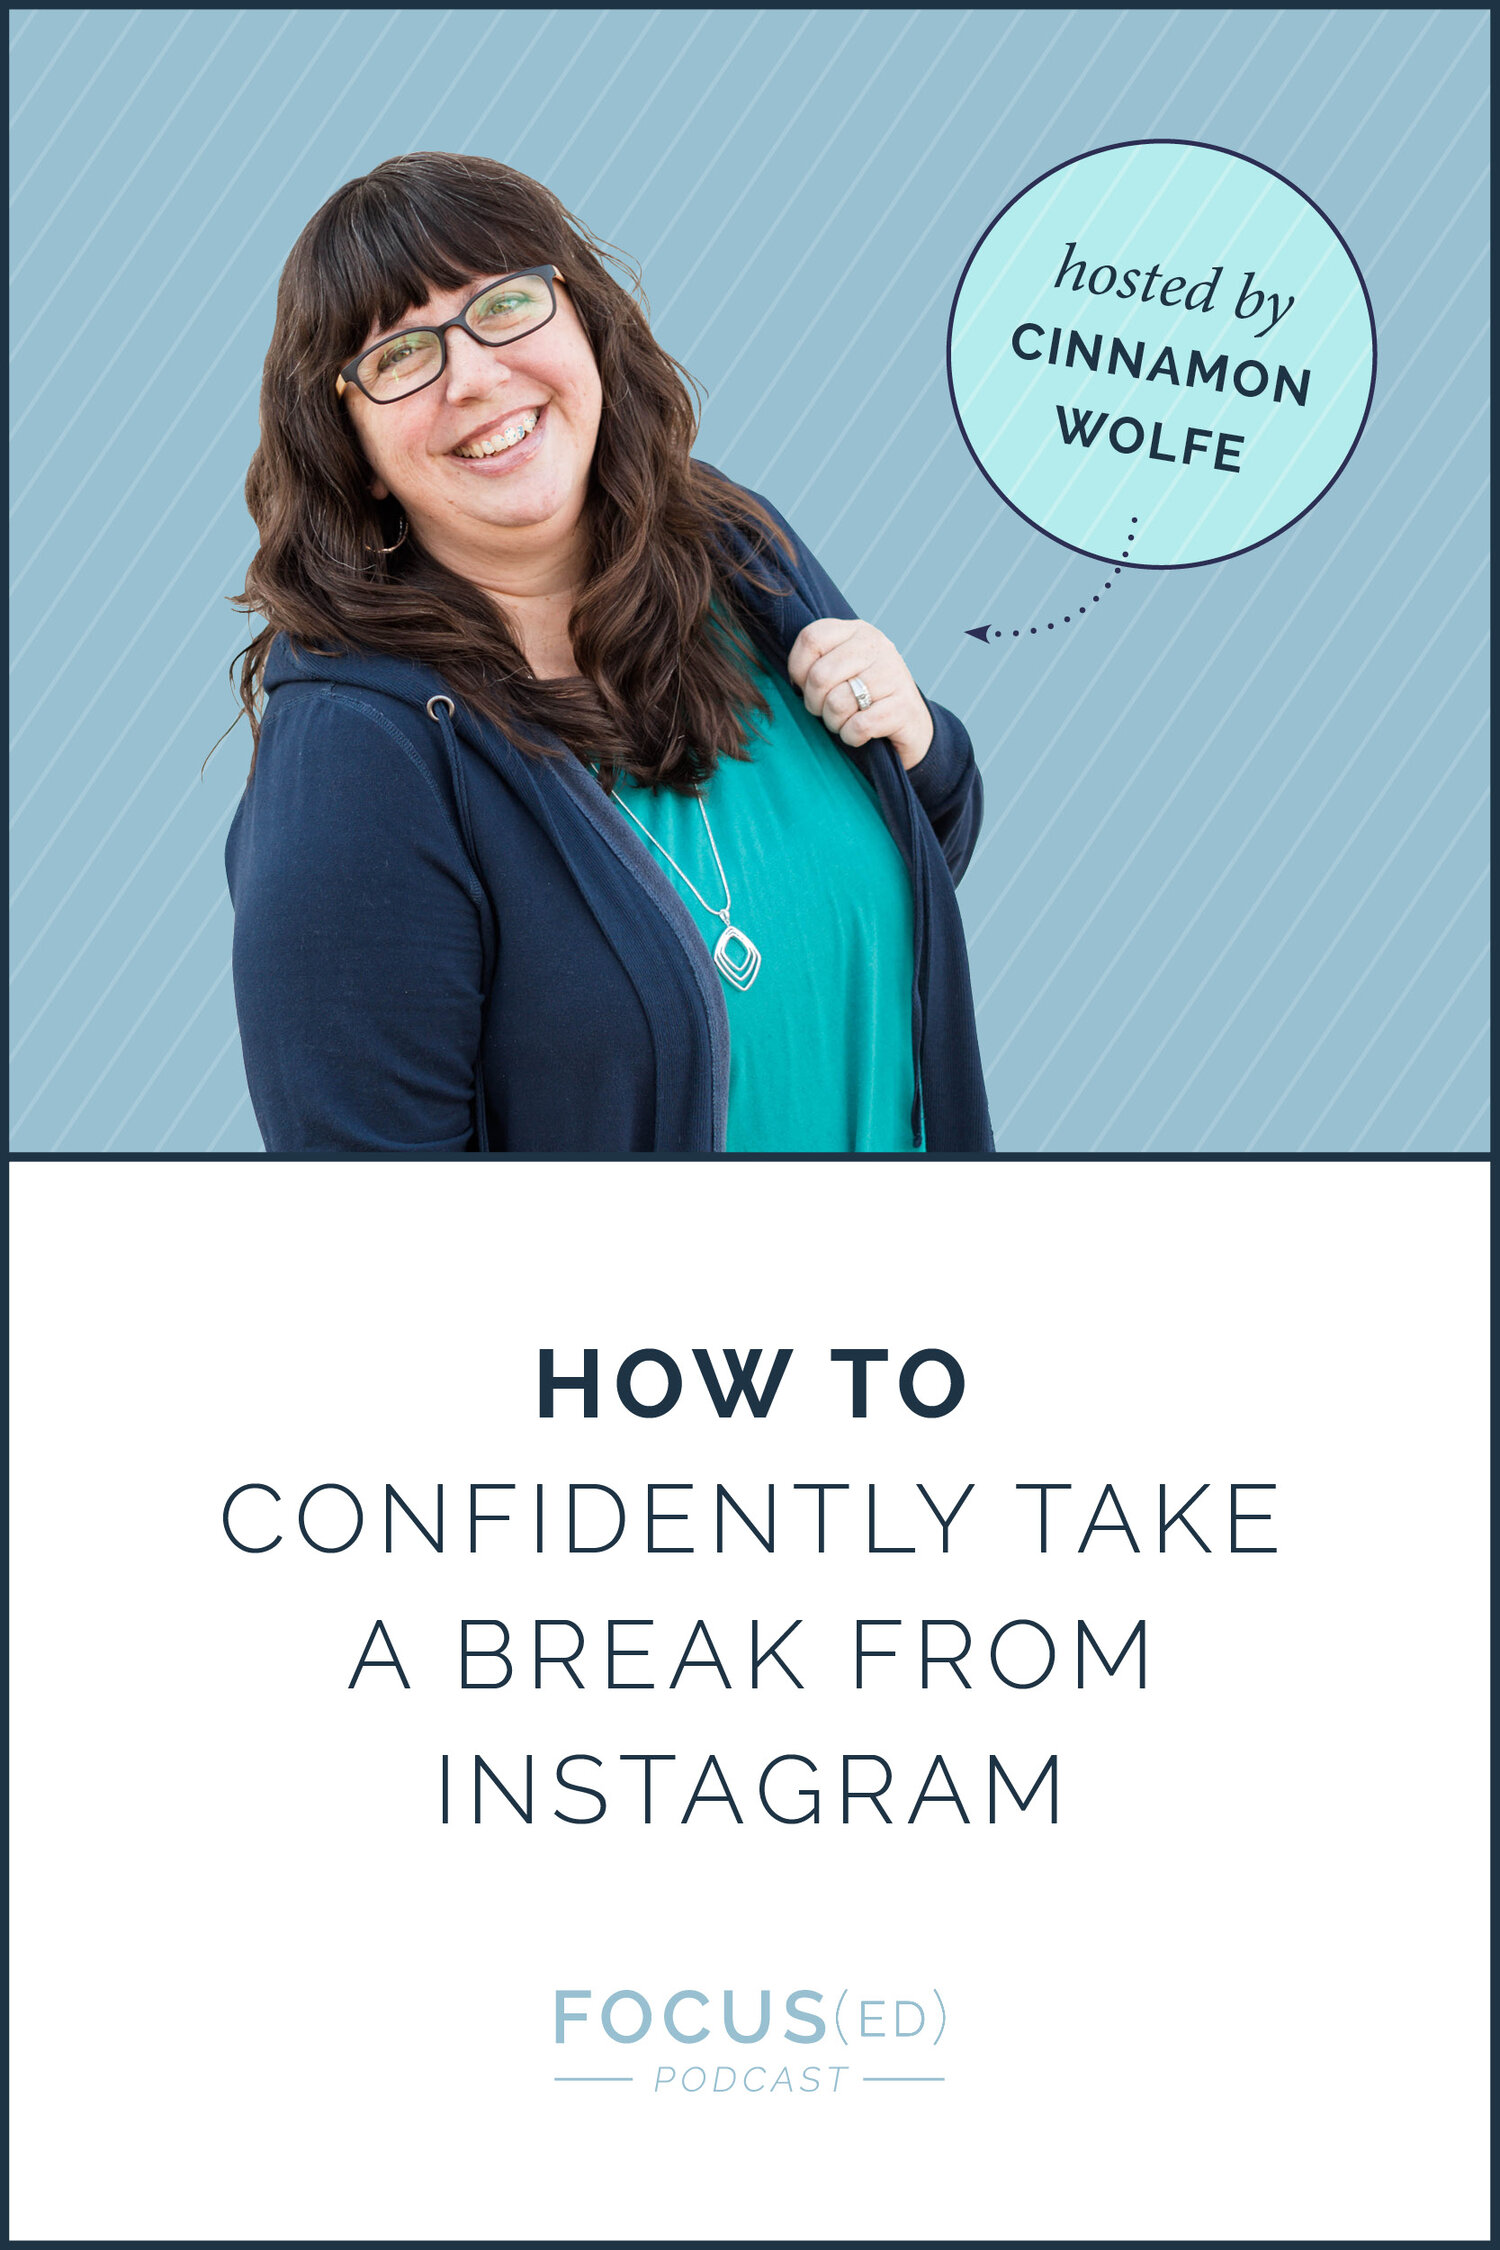 Focused Podcast with Cinnamon Wolfe: How to confidently take a break from Instagram